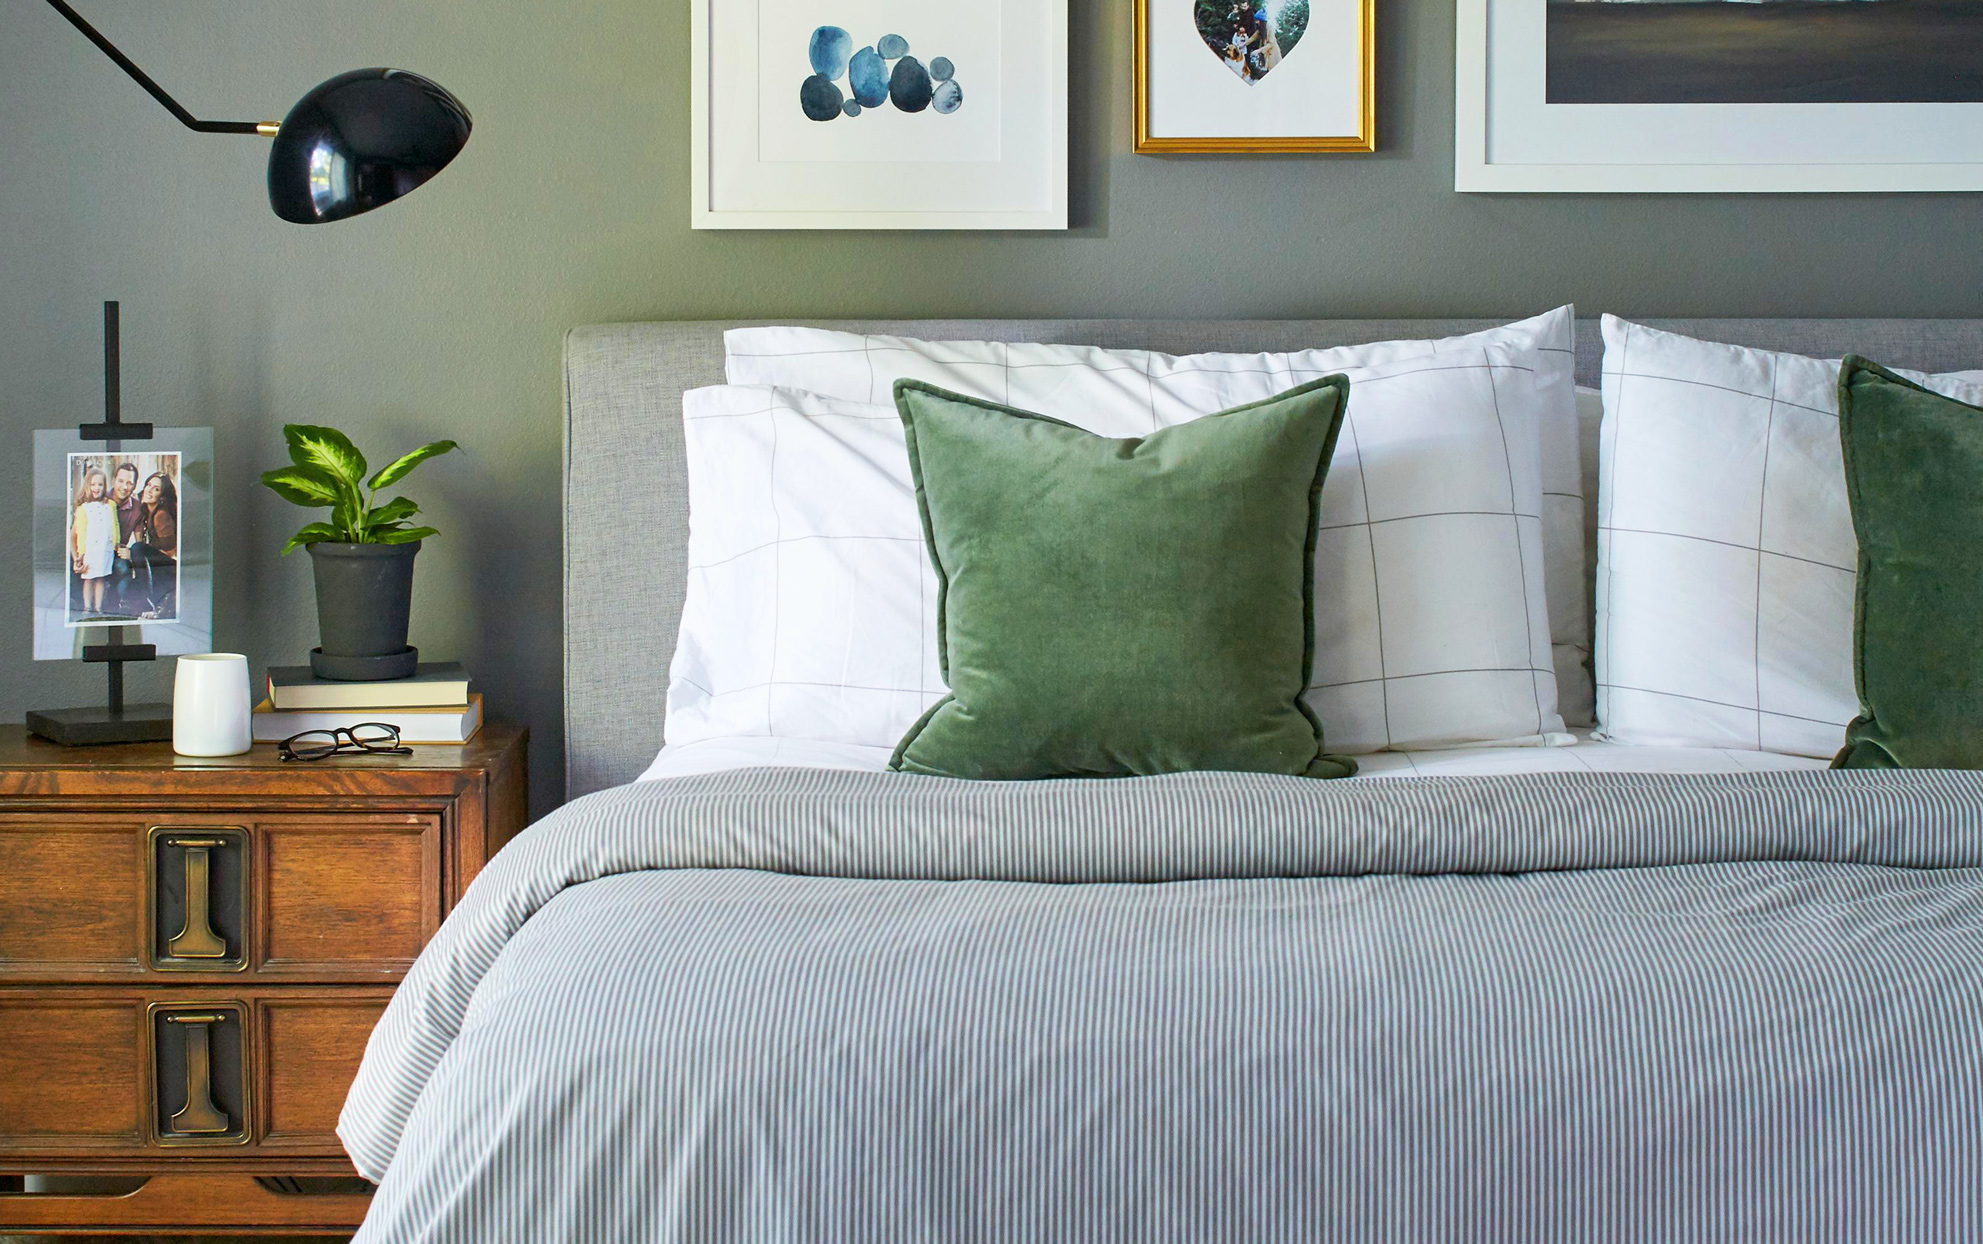 Bedroom Decorating and Design Ideas | Better Homes & Gardens ... on real life bedroom decorating, bedroom colors home and garden decorating, seventeen bedroom decorating, martha stewart bedroom decorating, better homes and gardens entryway decorating, country home bedroom decorating, better homes gardens room additions,